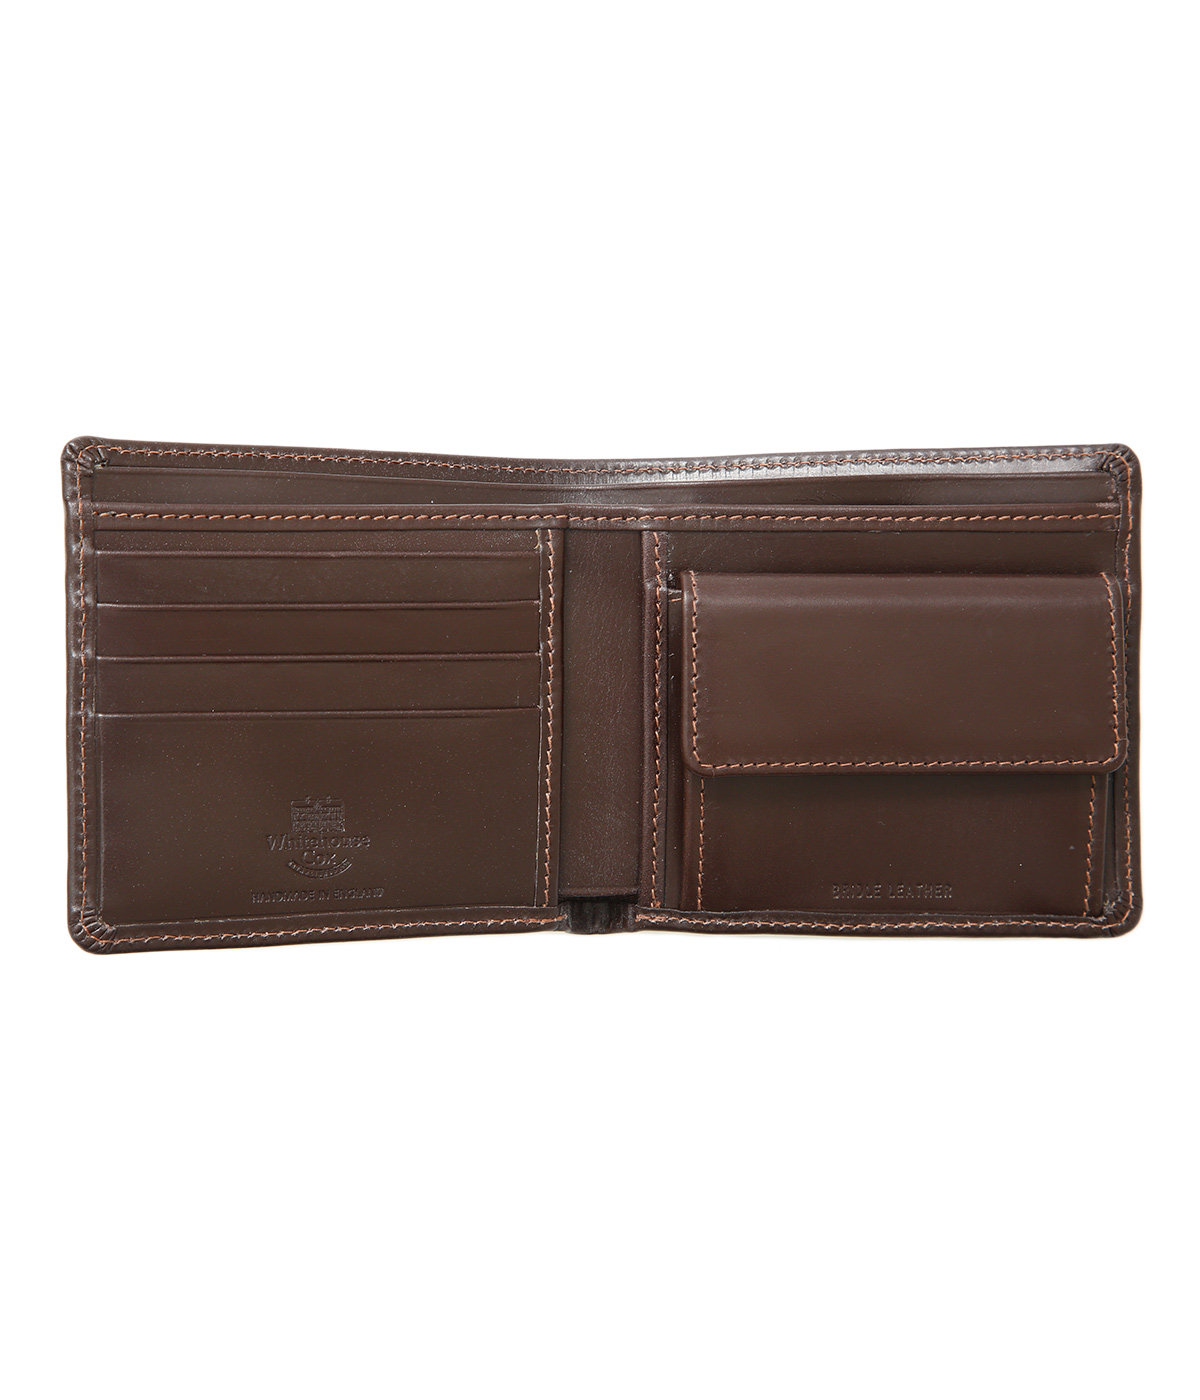 NOTECASE WITH COIN CASE